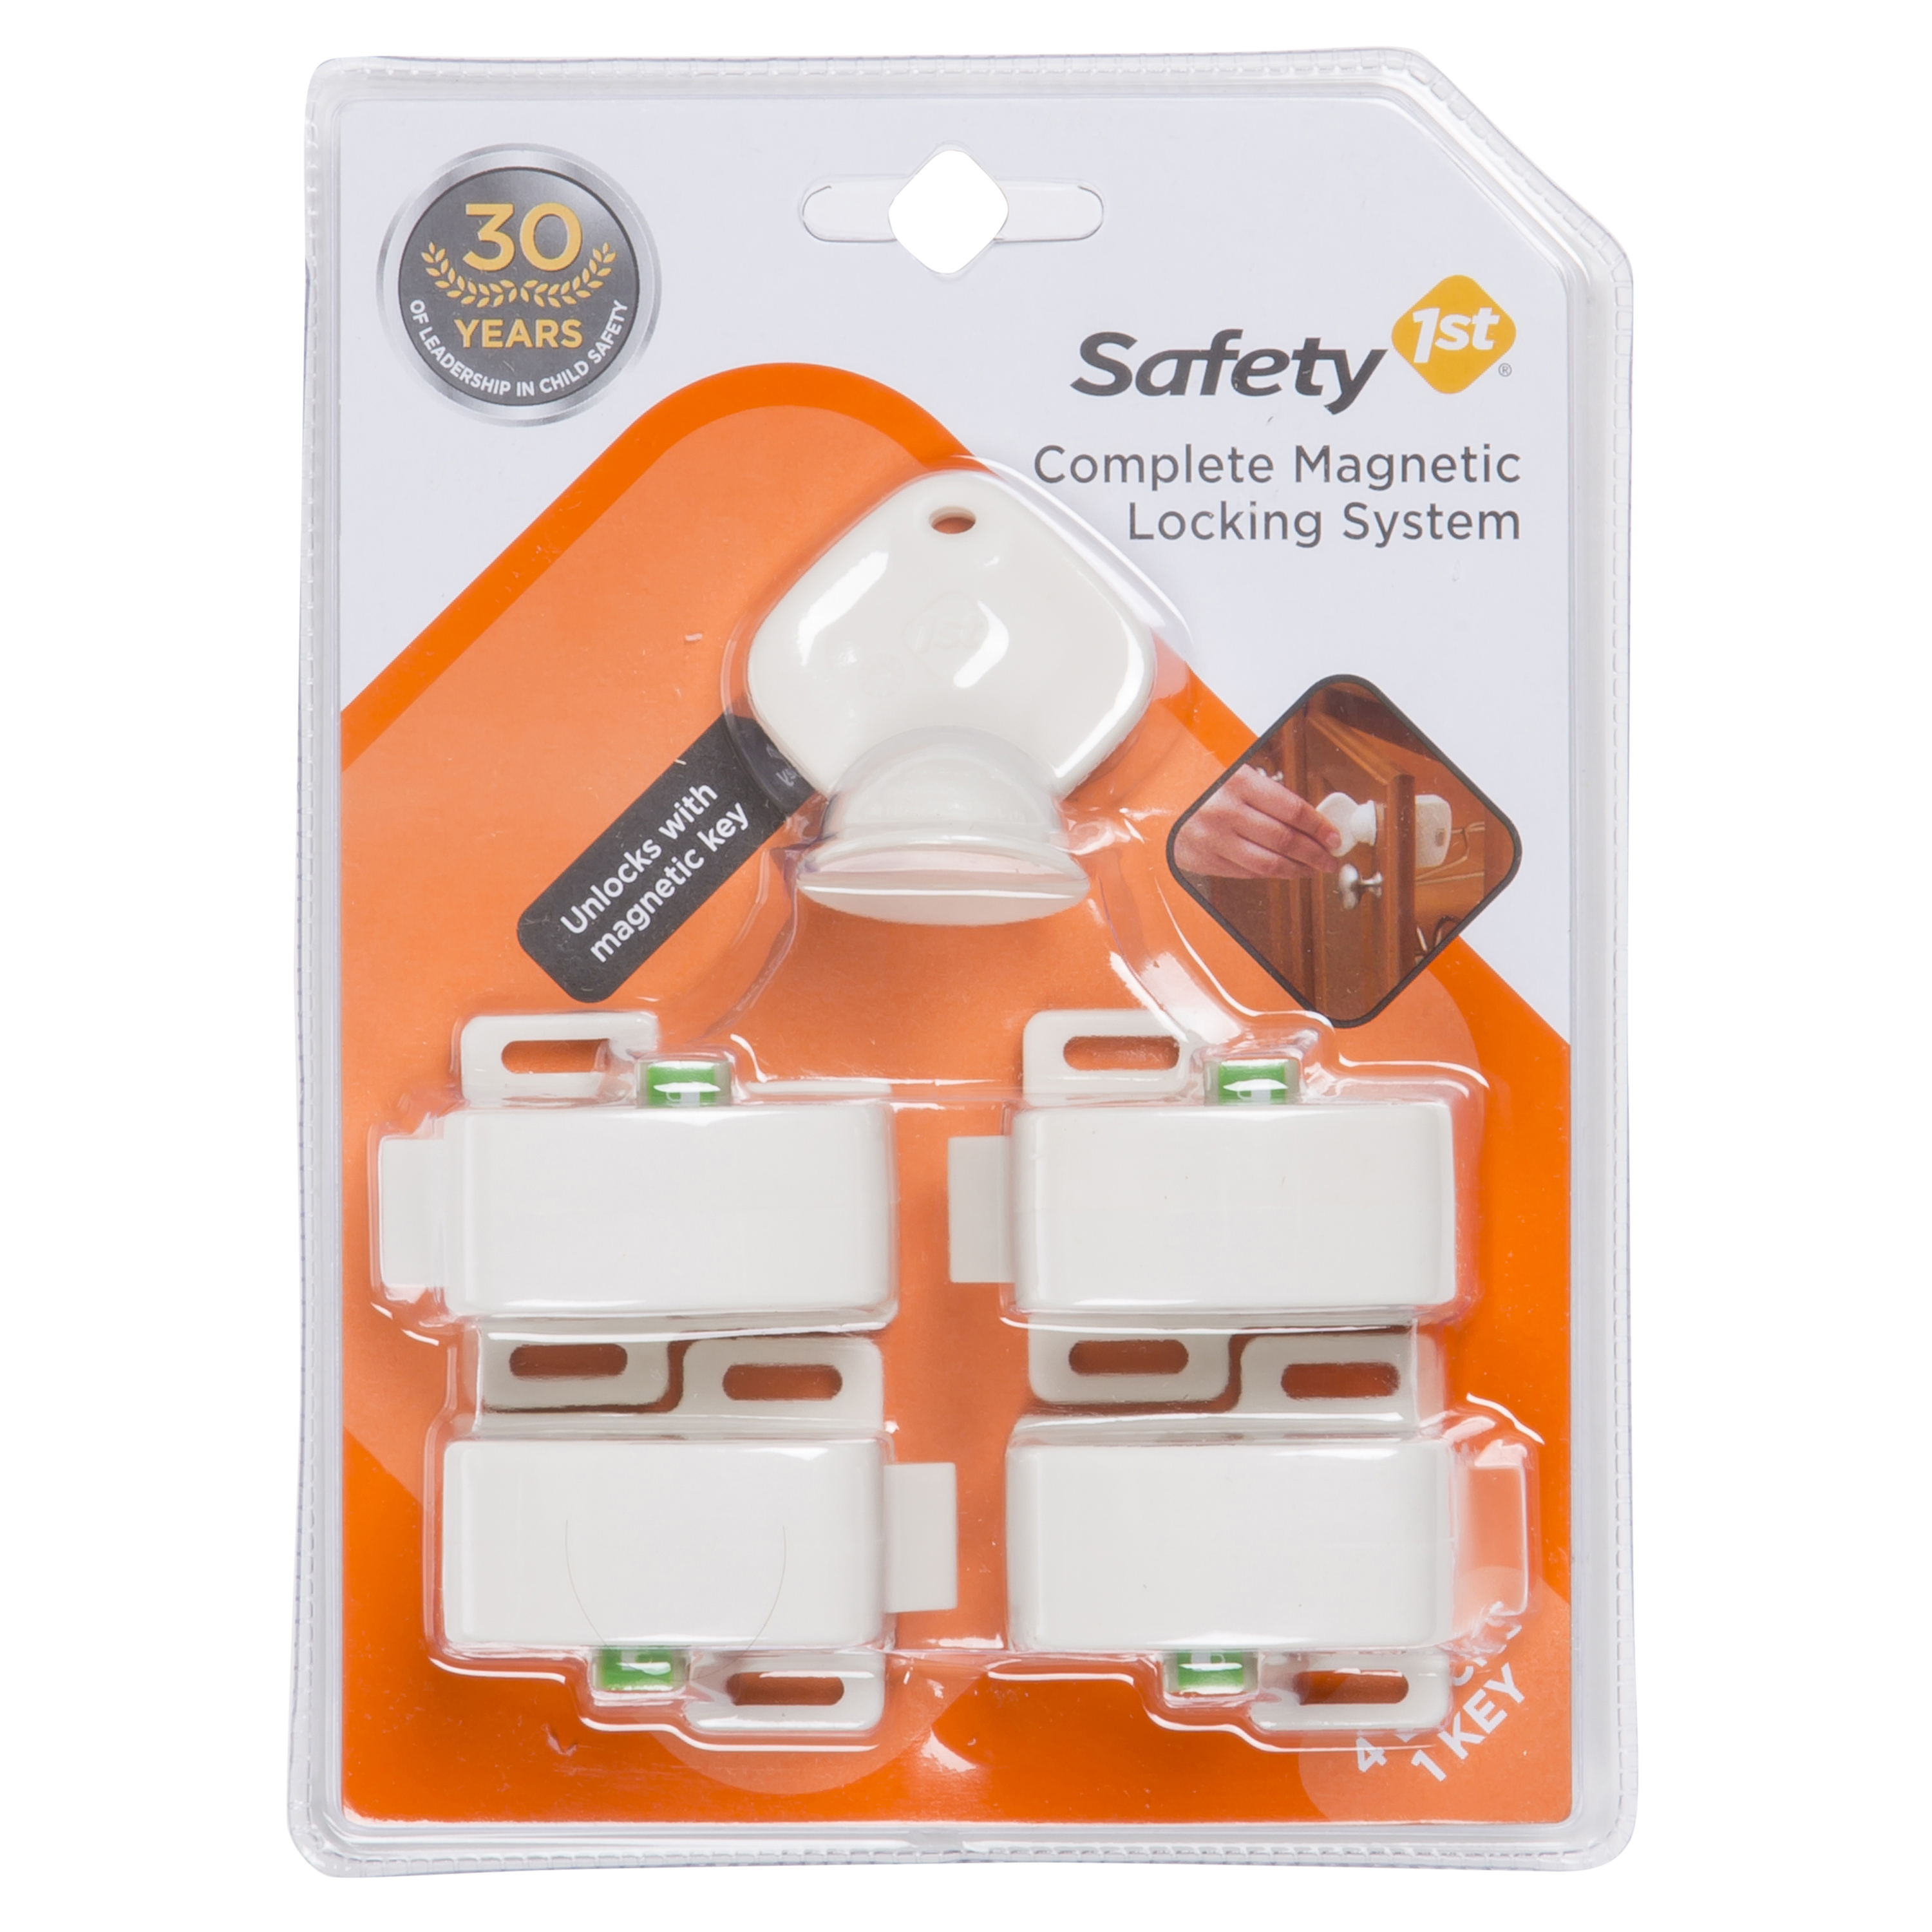 Safety 1����� Complete Magnetic Locking System (4 Locks, 1 Key), White